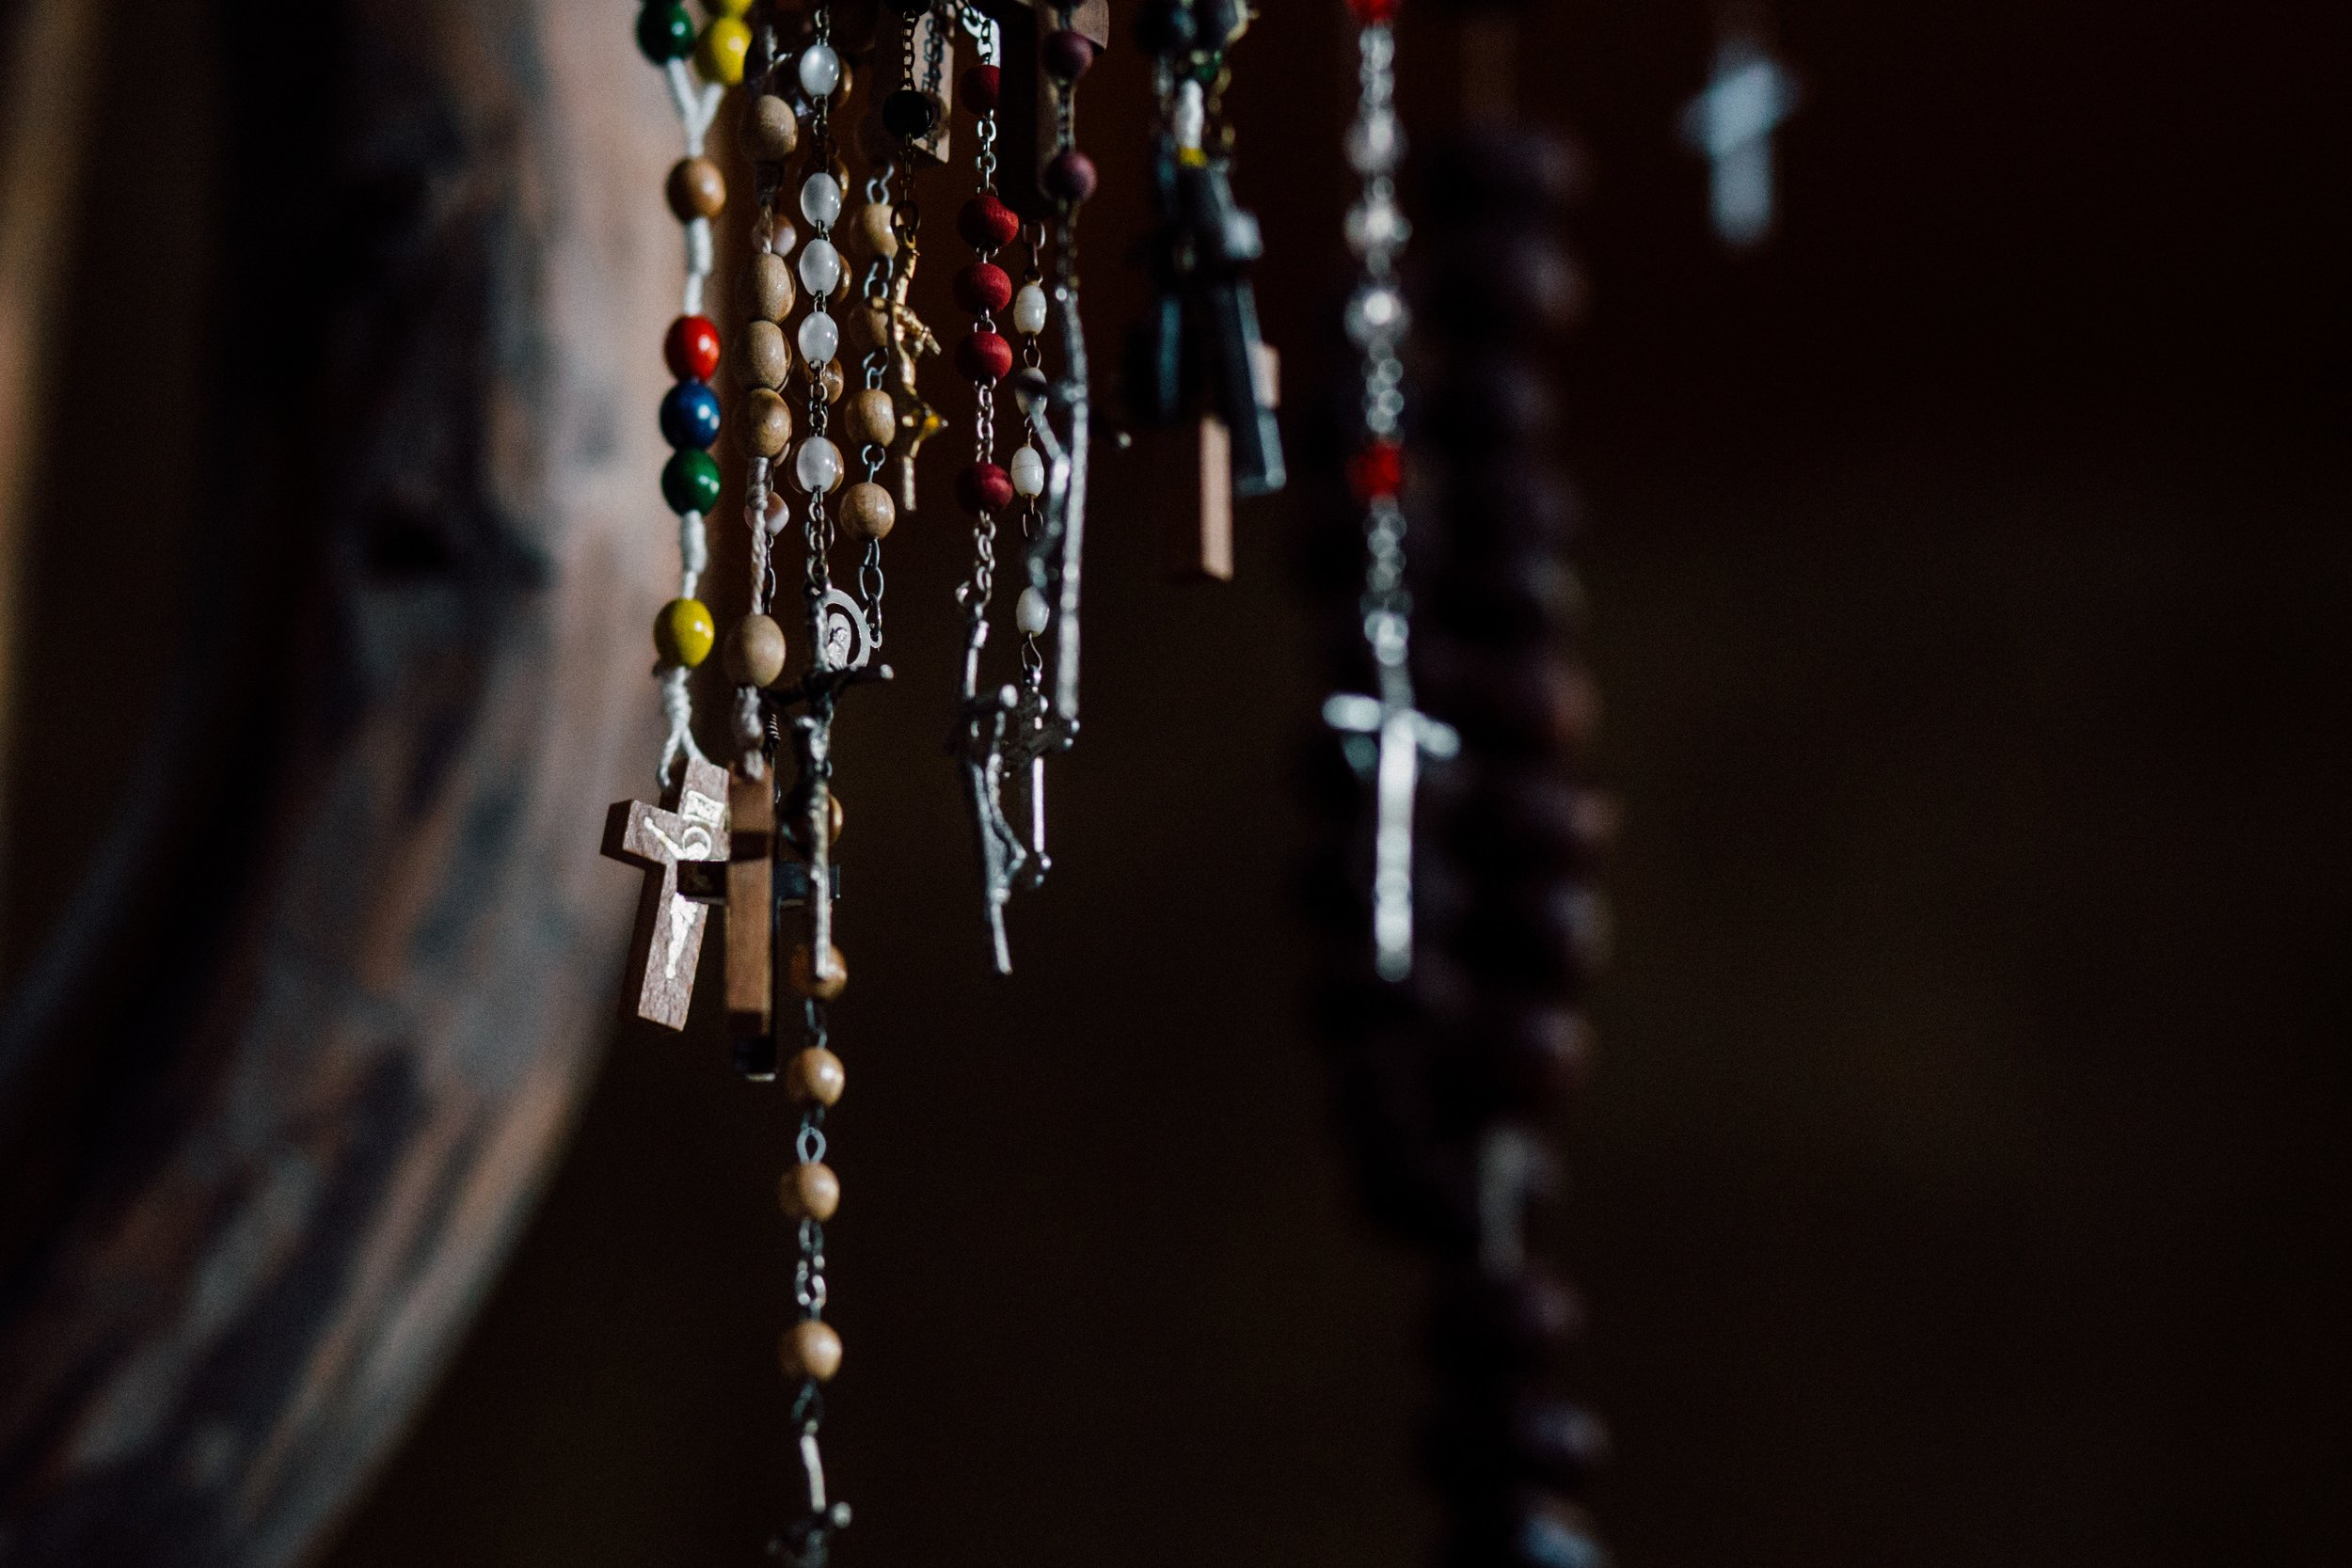 beads-blur-close-up-1141833.jpg